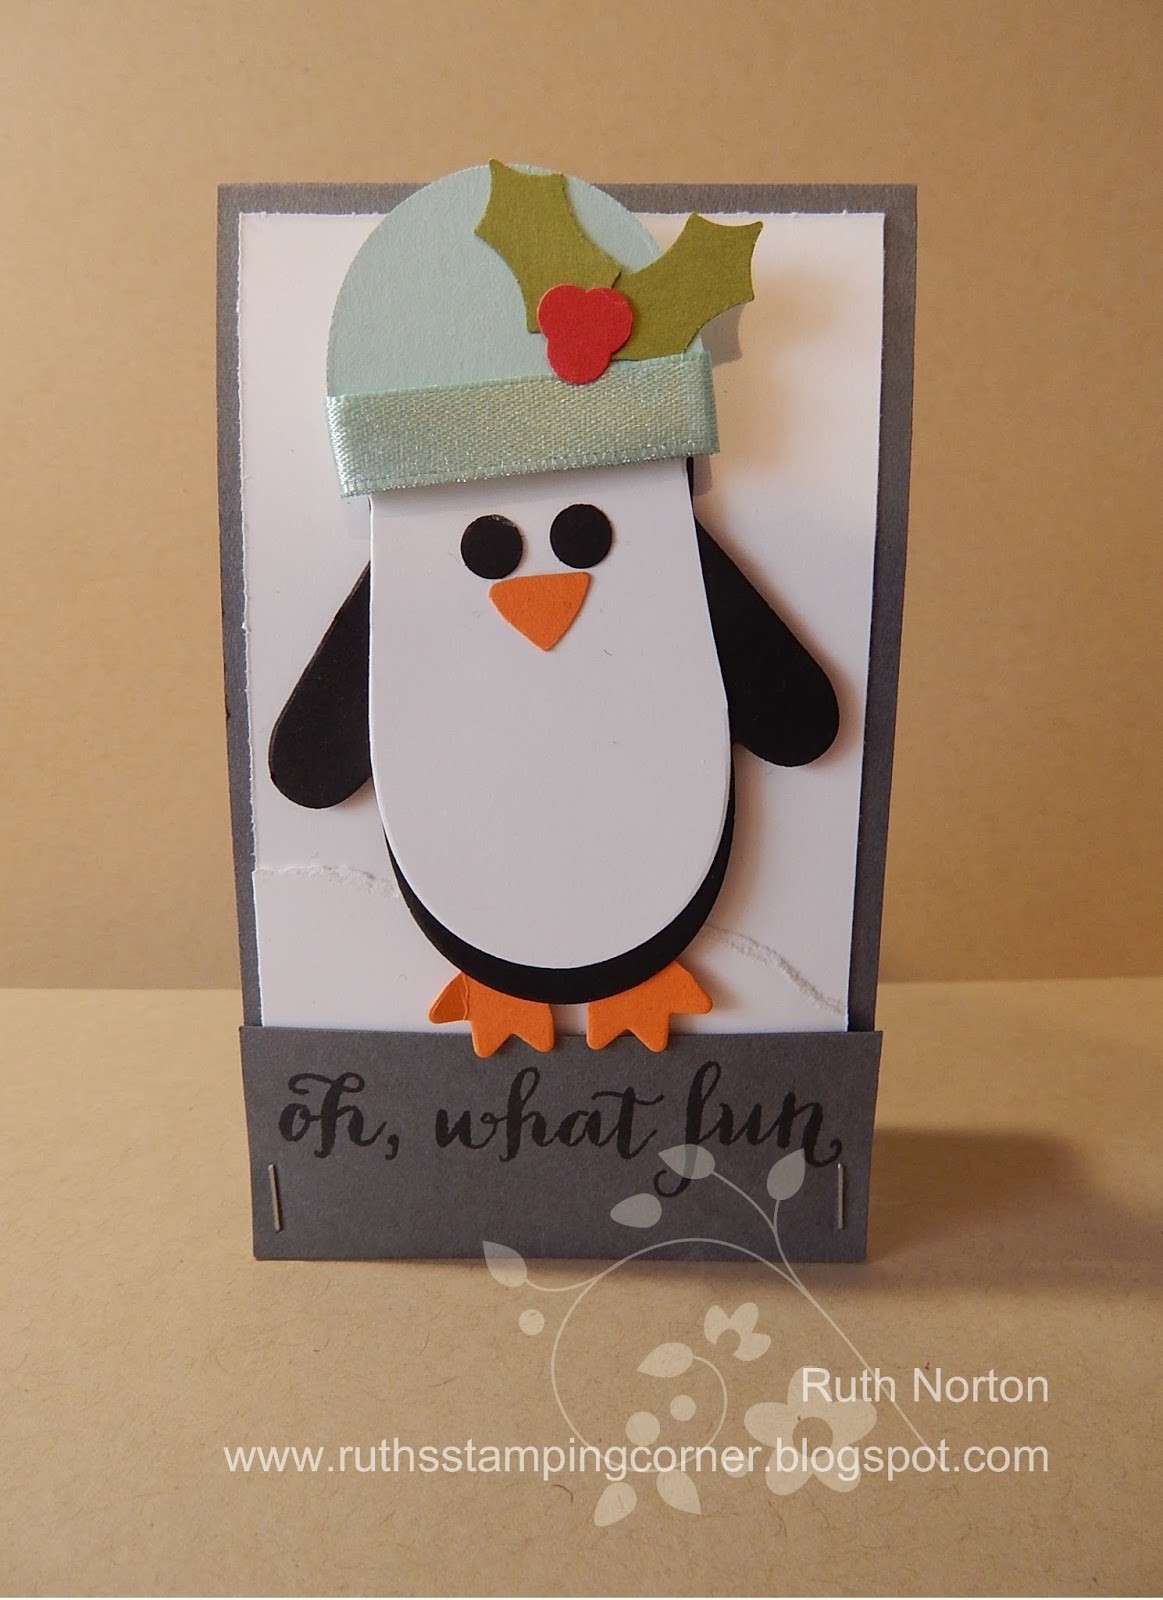 Ruths stamping corner christmas gift card holder class finally the last holder is probably my favorite isnt that penguin super duper cute i love him shannon west demoed how to make this penguin at my m4hsunfo